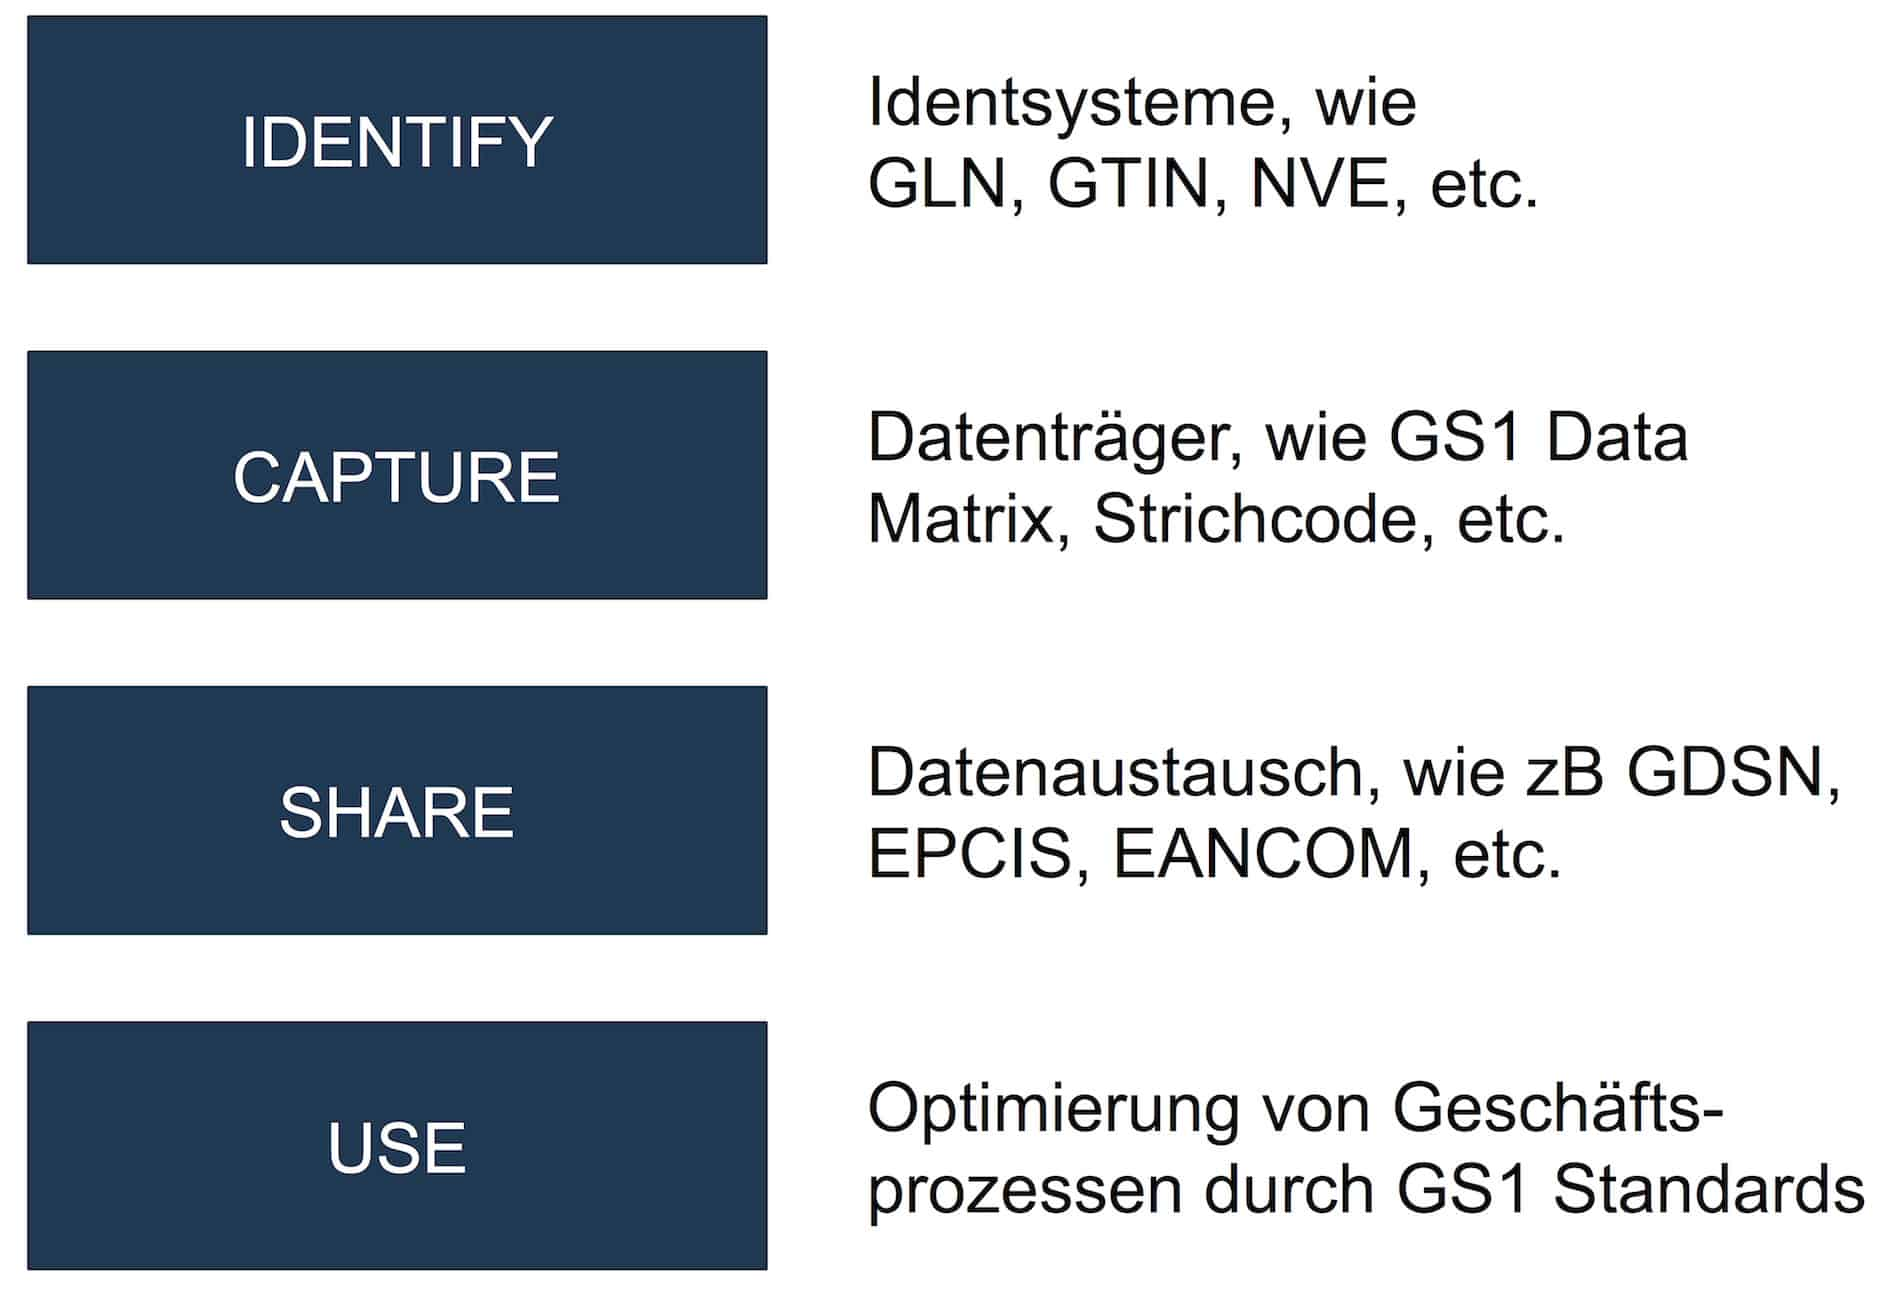 GS1-System